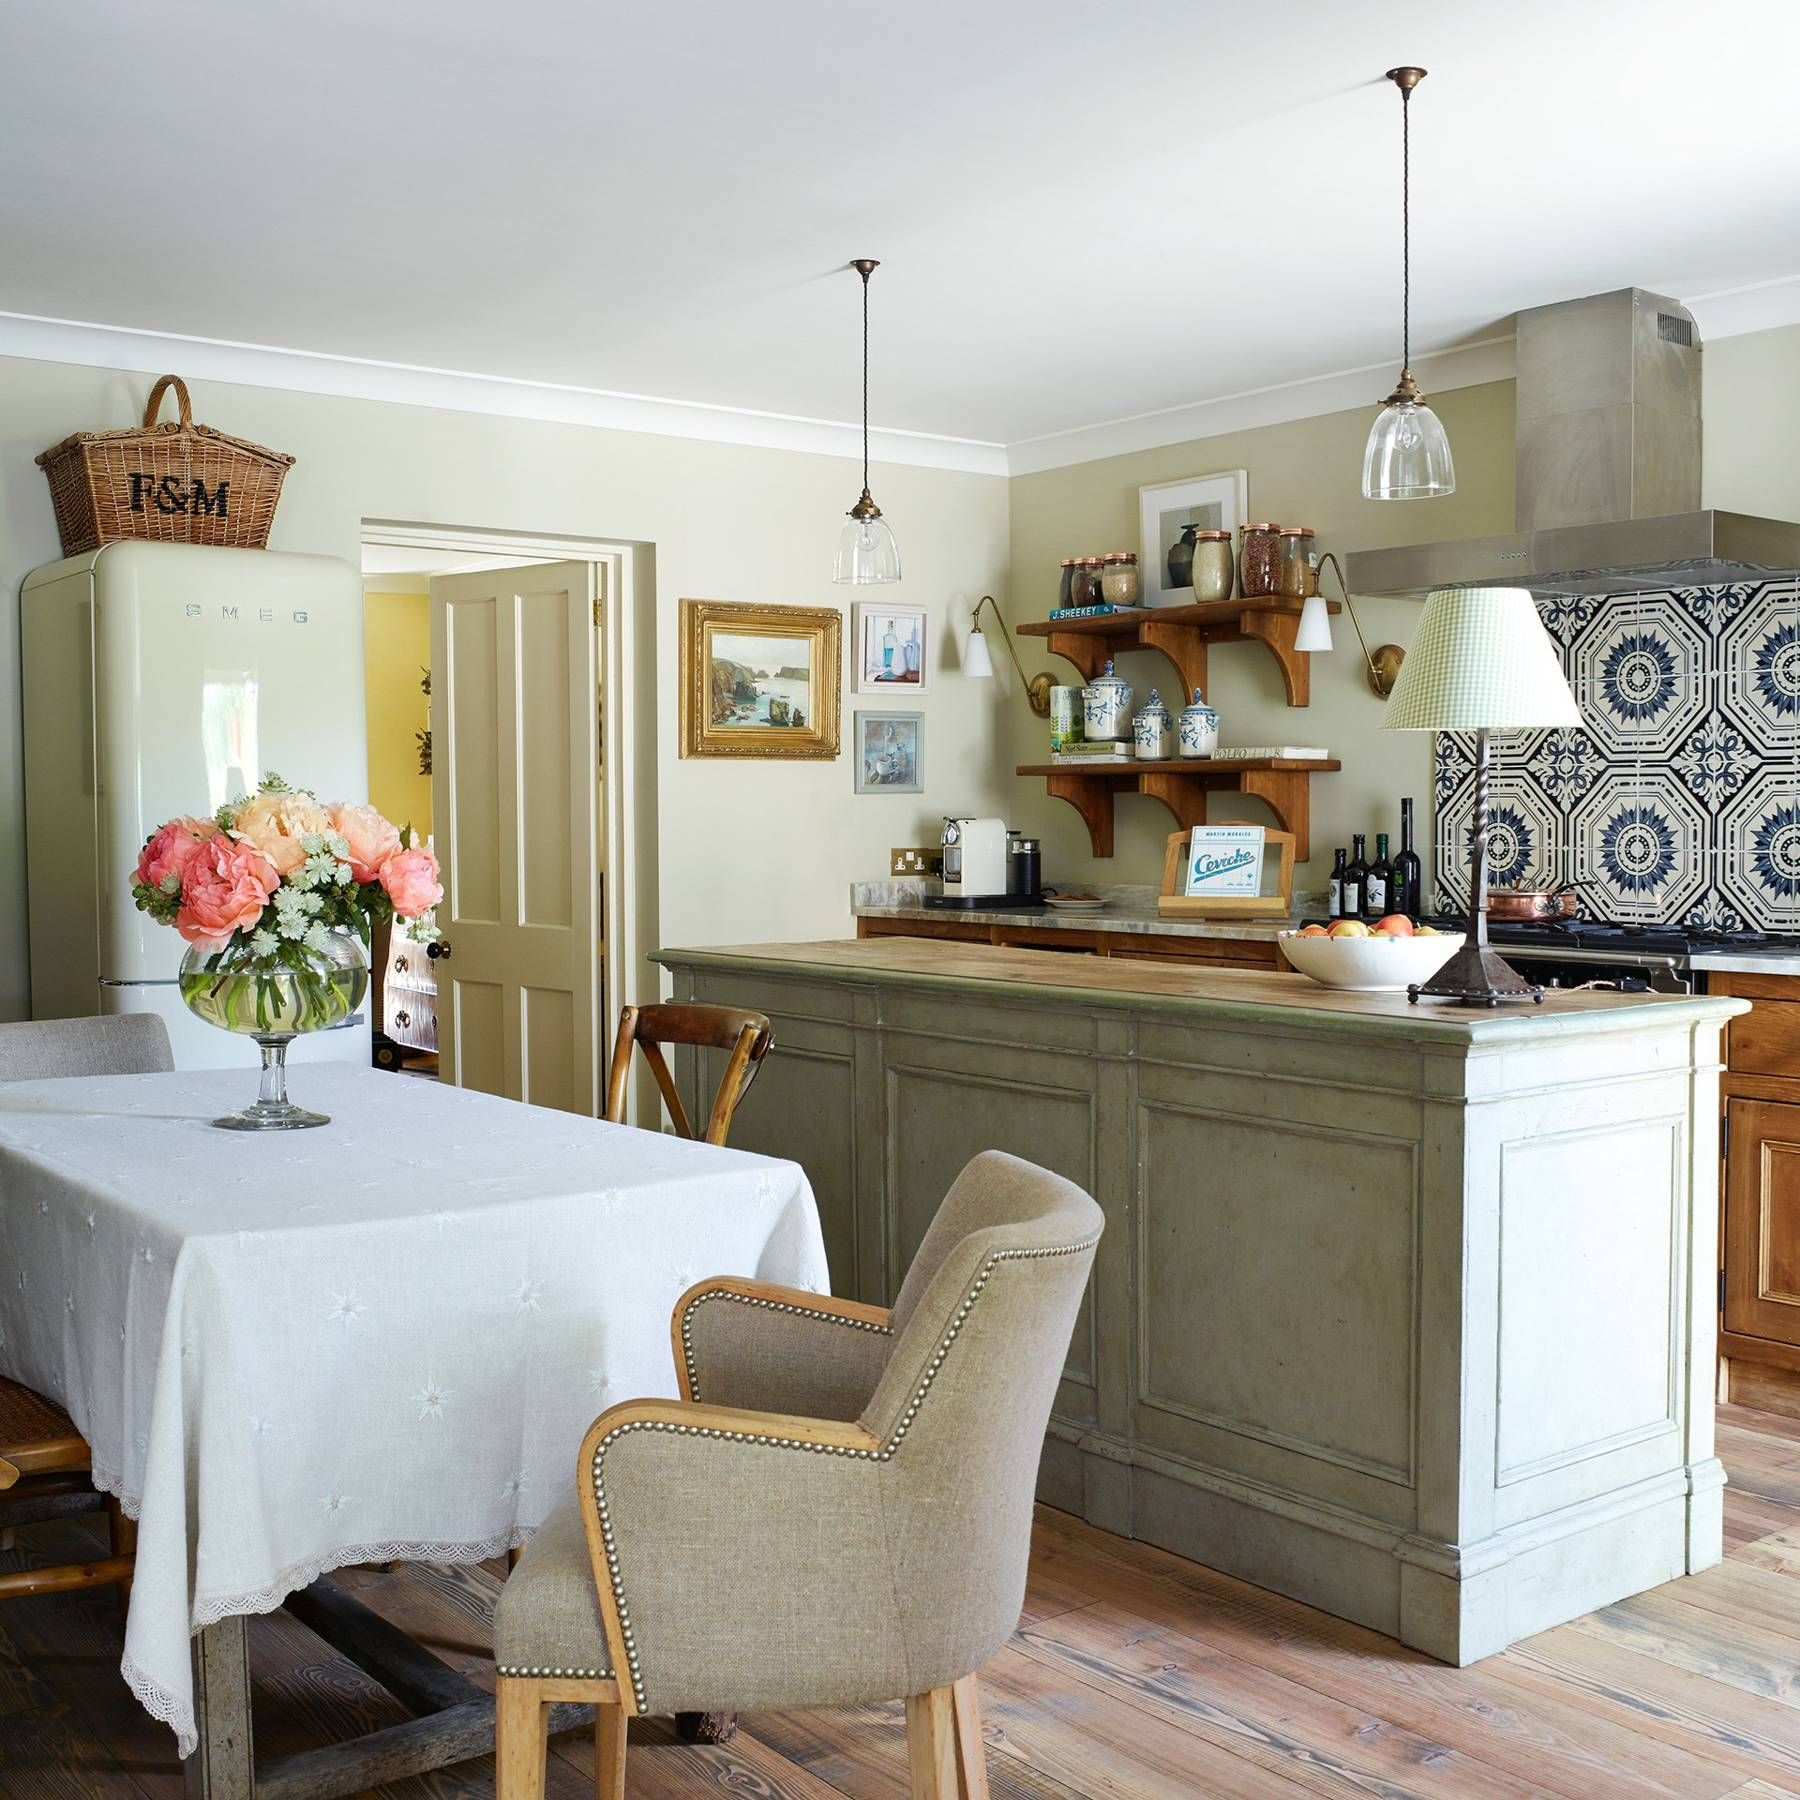 Country kitchen ideas and designs Country kitchen